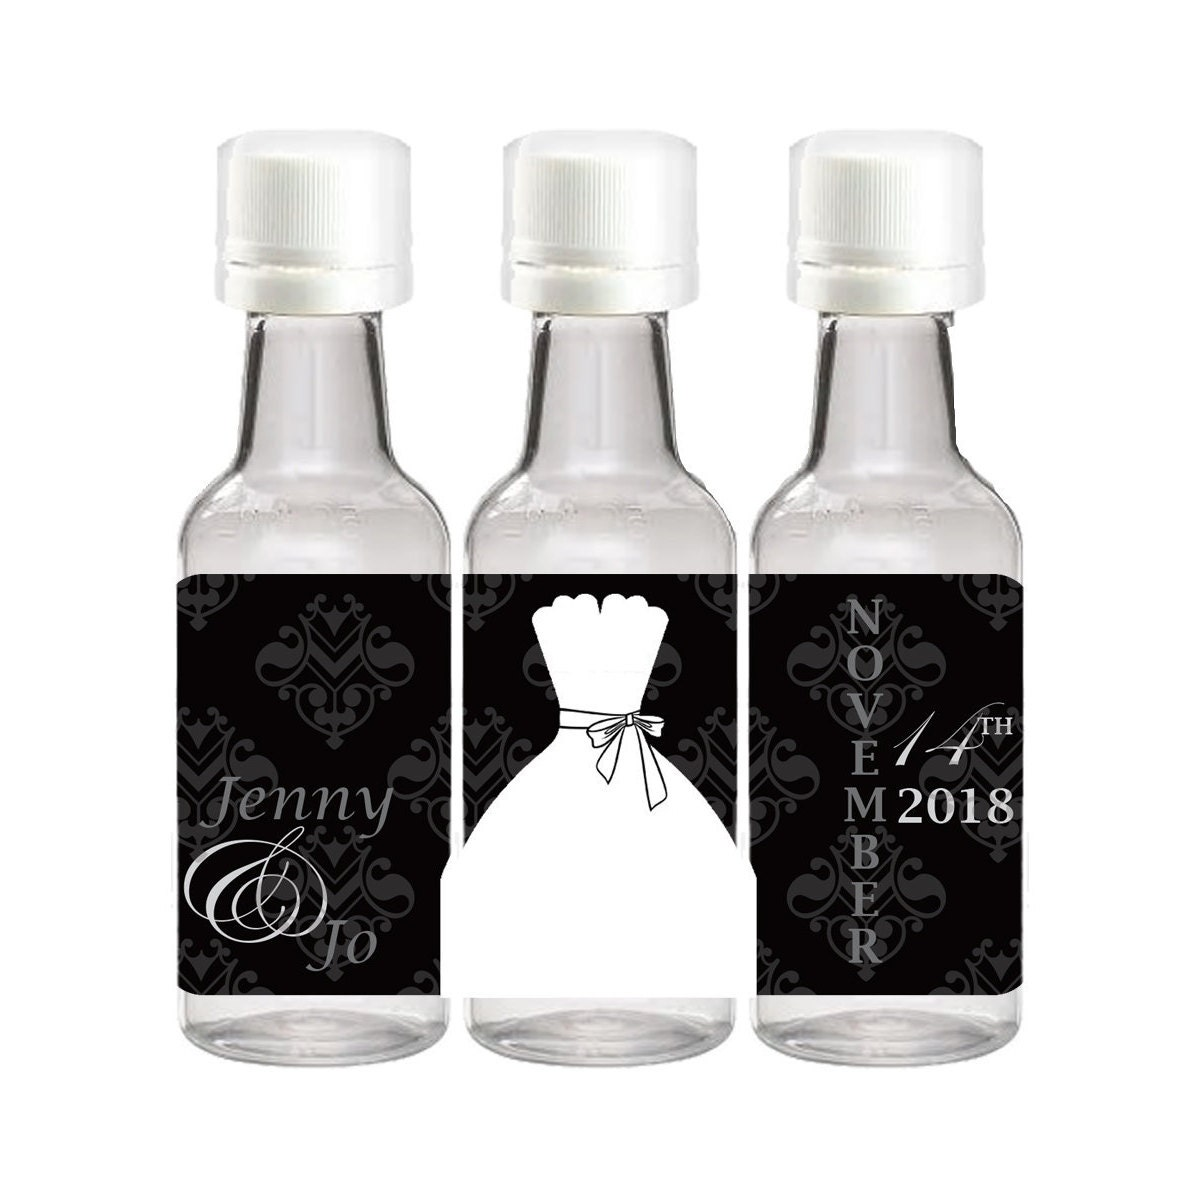 Bride and Groom Mini Liquor Bottle Labels Custom Labels